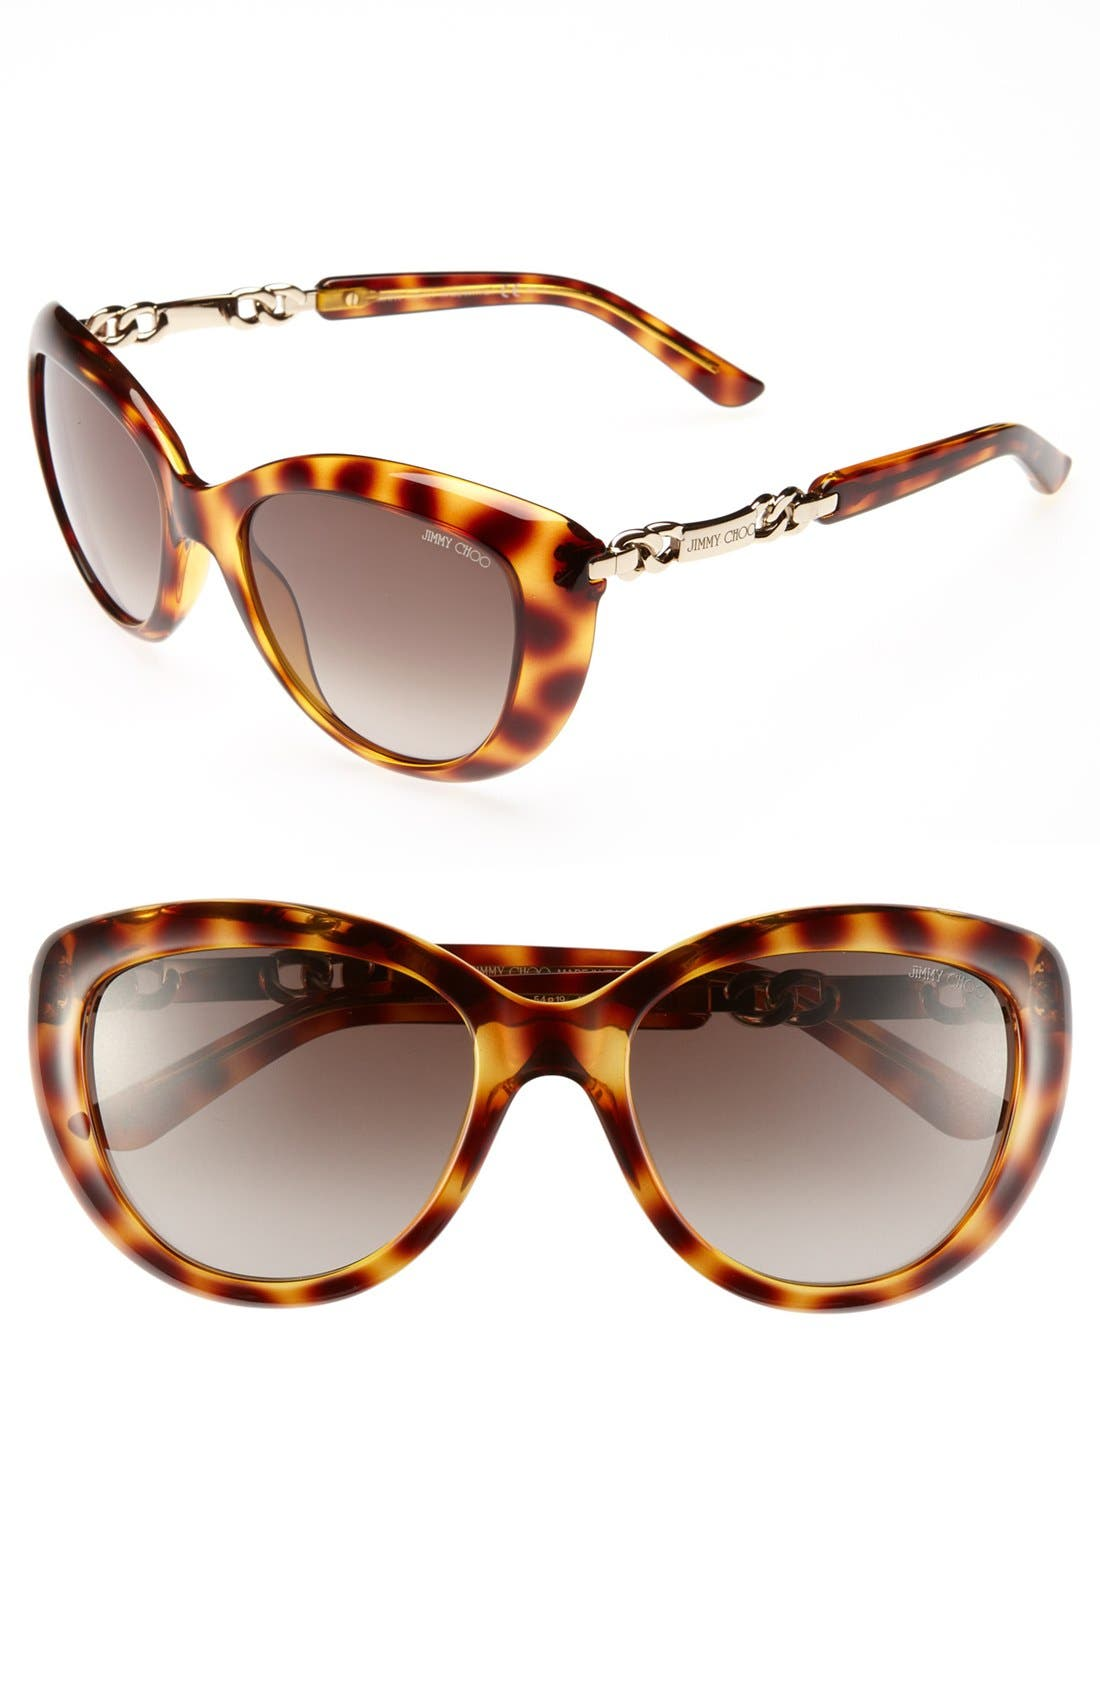 Alternate Image 1 Selected - Jimmy Choo 'Wigmore' 54mm Sunglasses